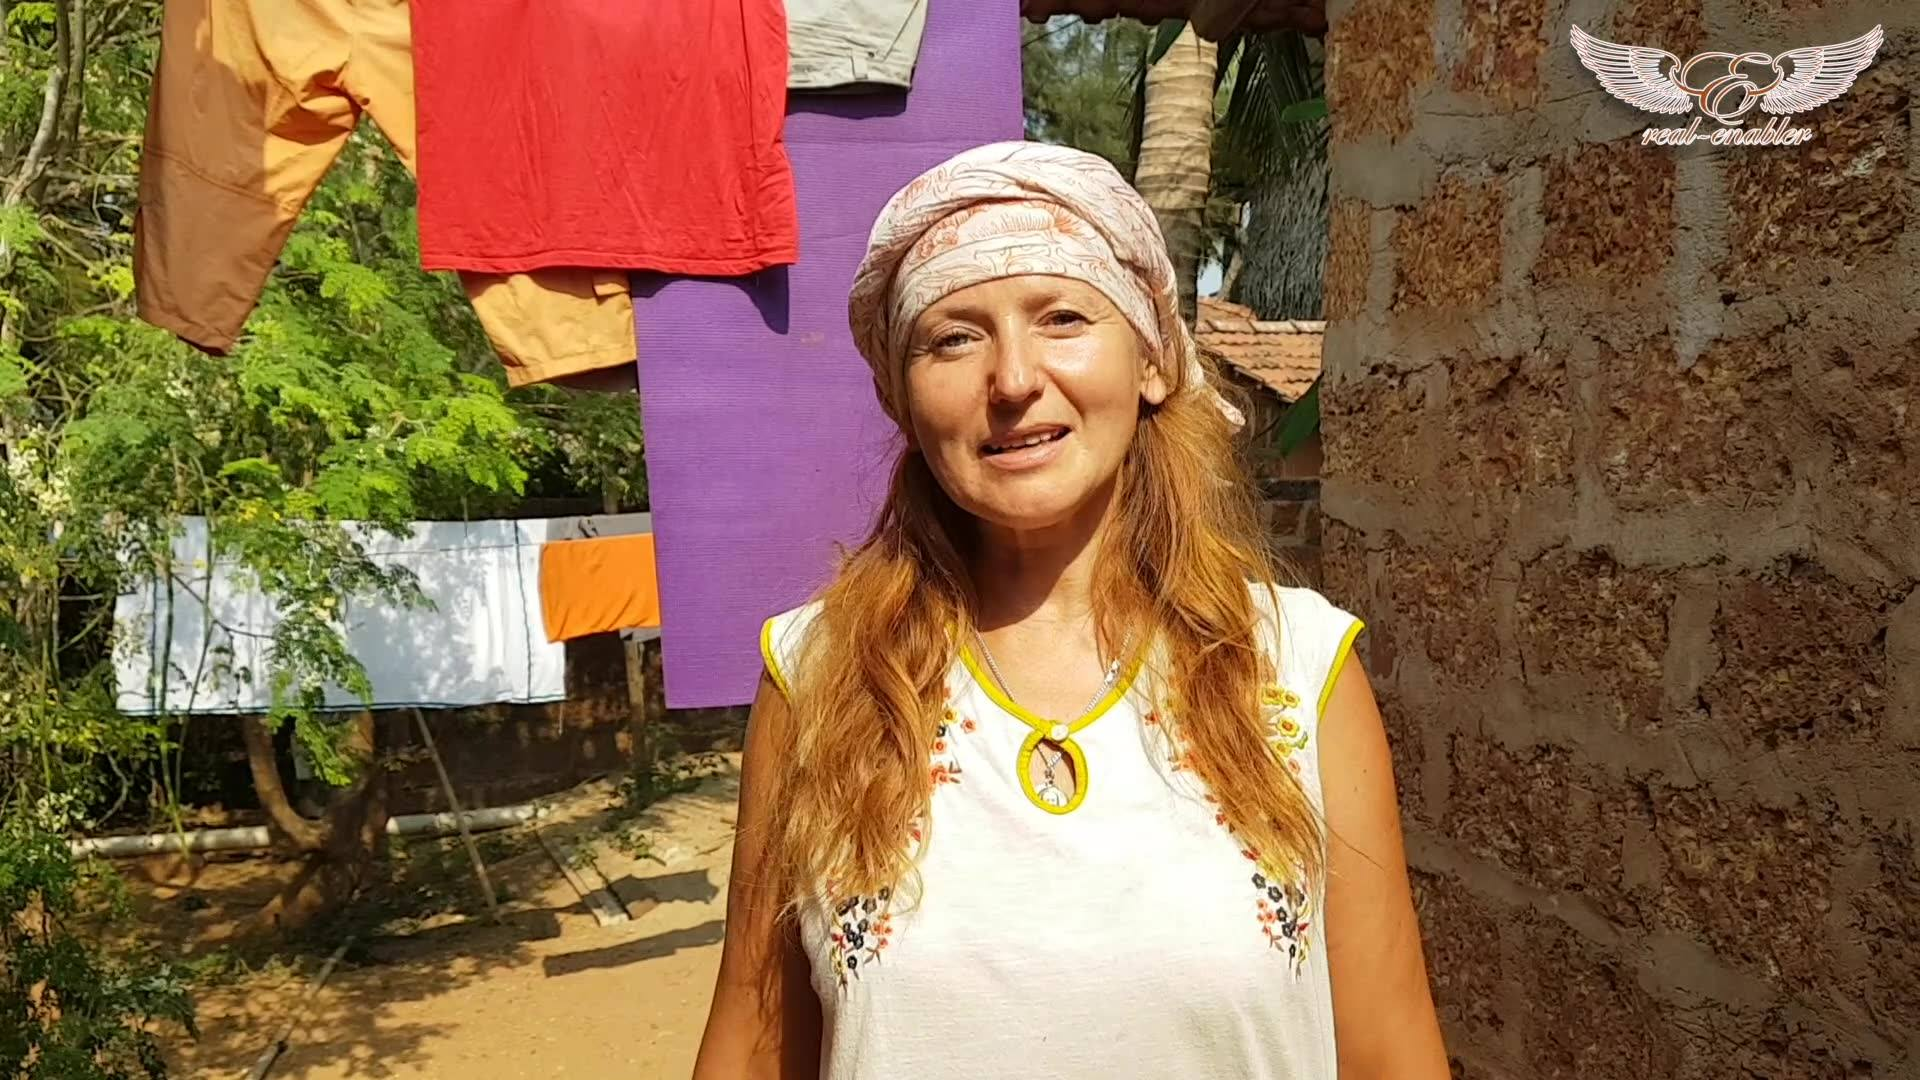 Yoga-teacher about Karen and Real-Enabler